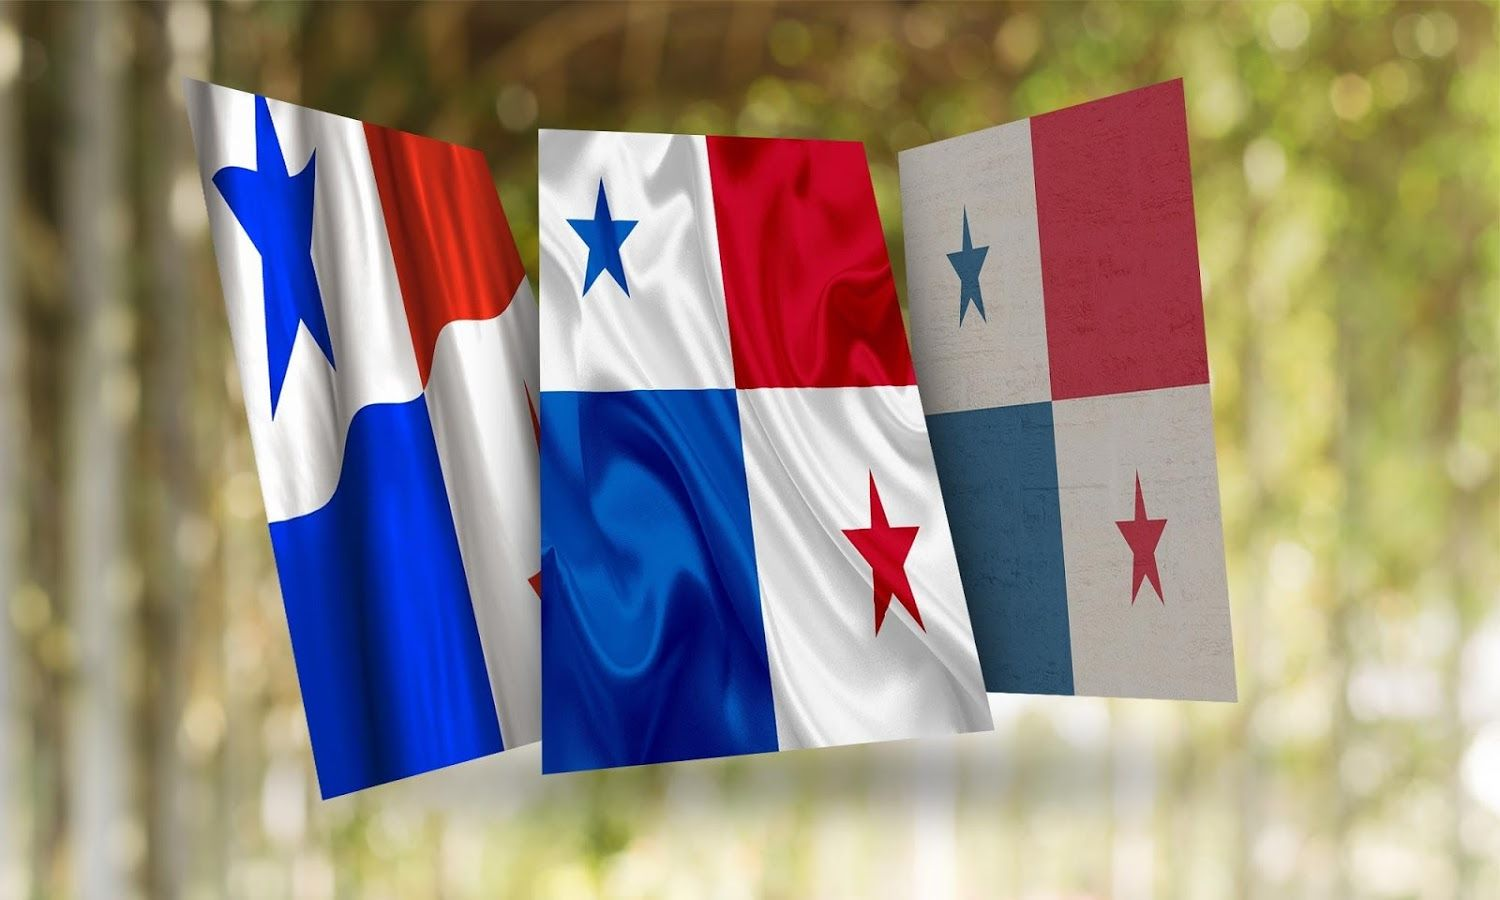 1500x900 Panama Flag Wallpaper – Android Apps on Google Play